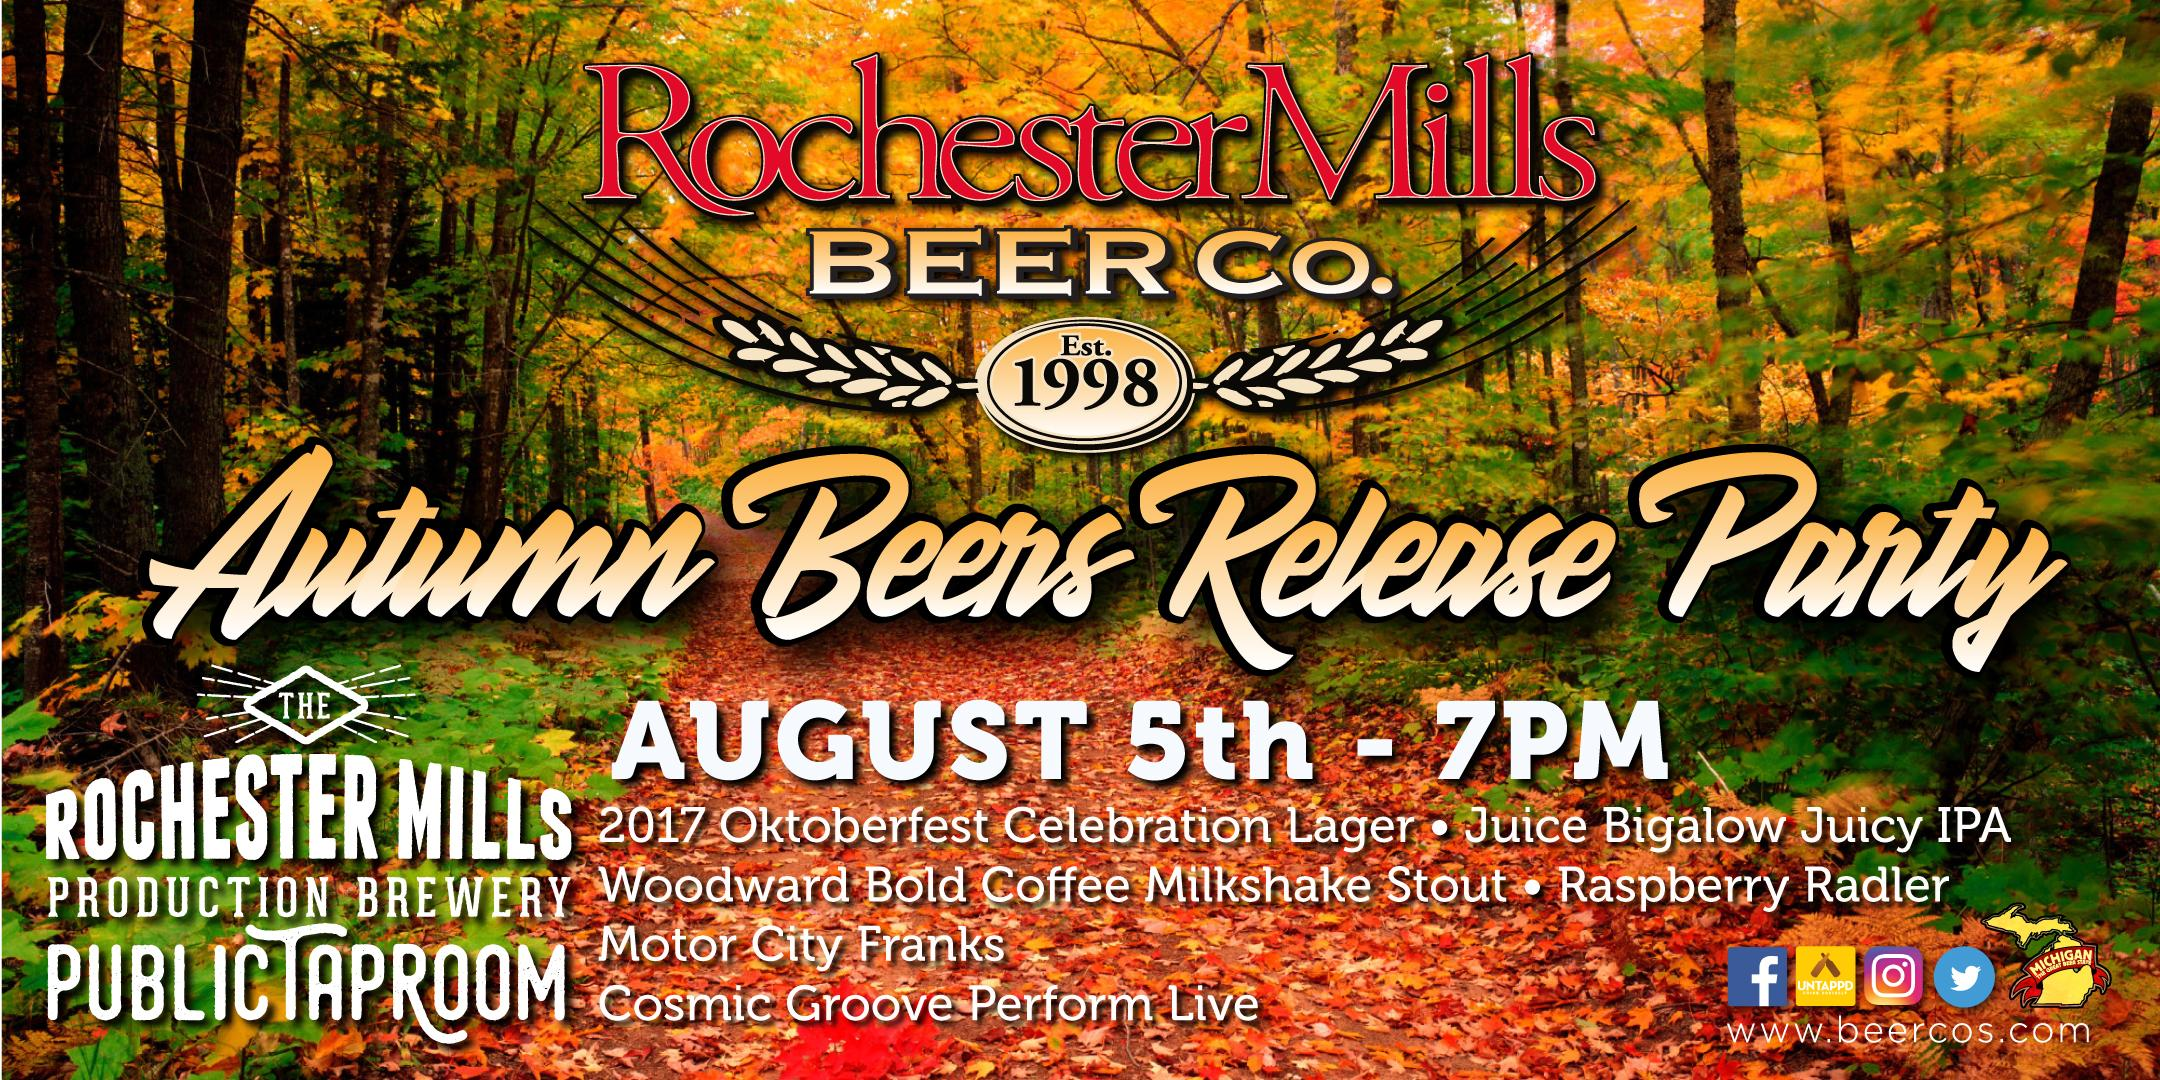 Rochester Mills Autumn Beers Release Party. Rochester Mills Autumn Beers Release Party